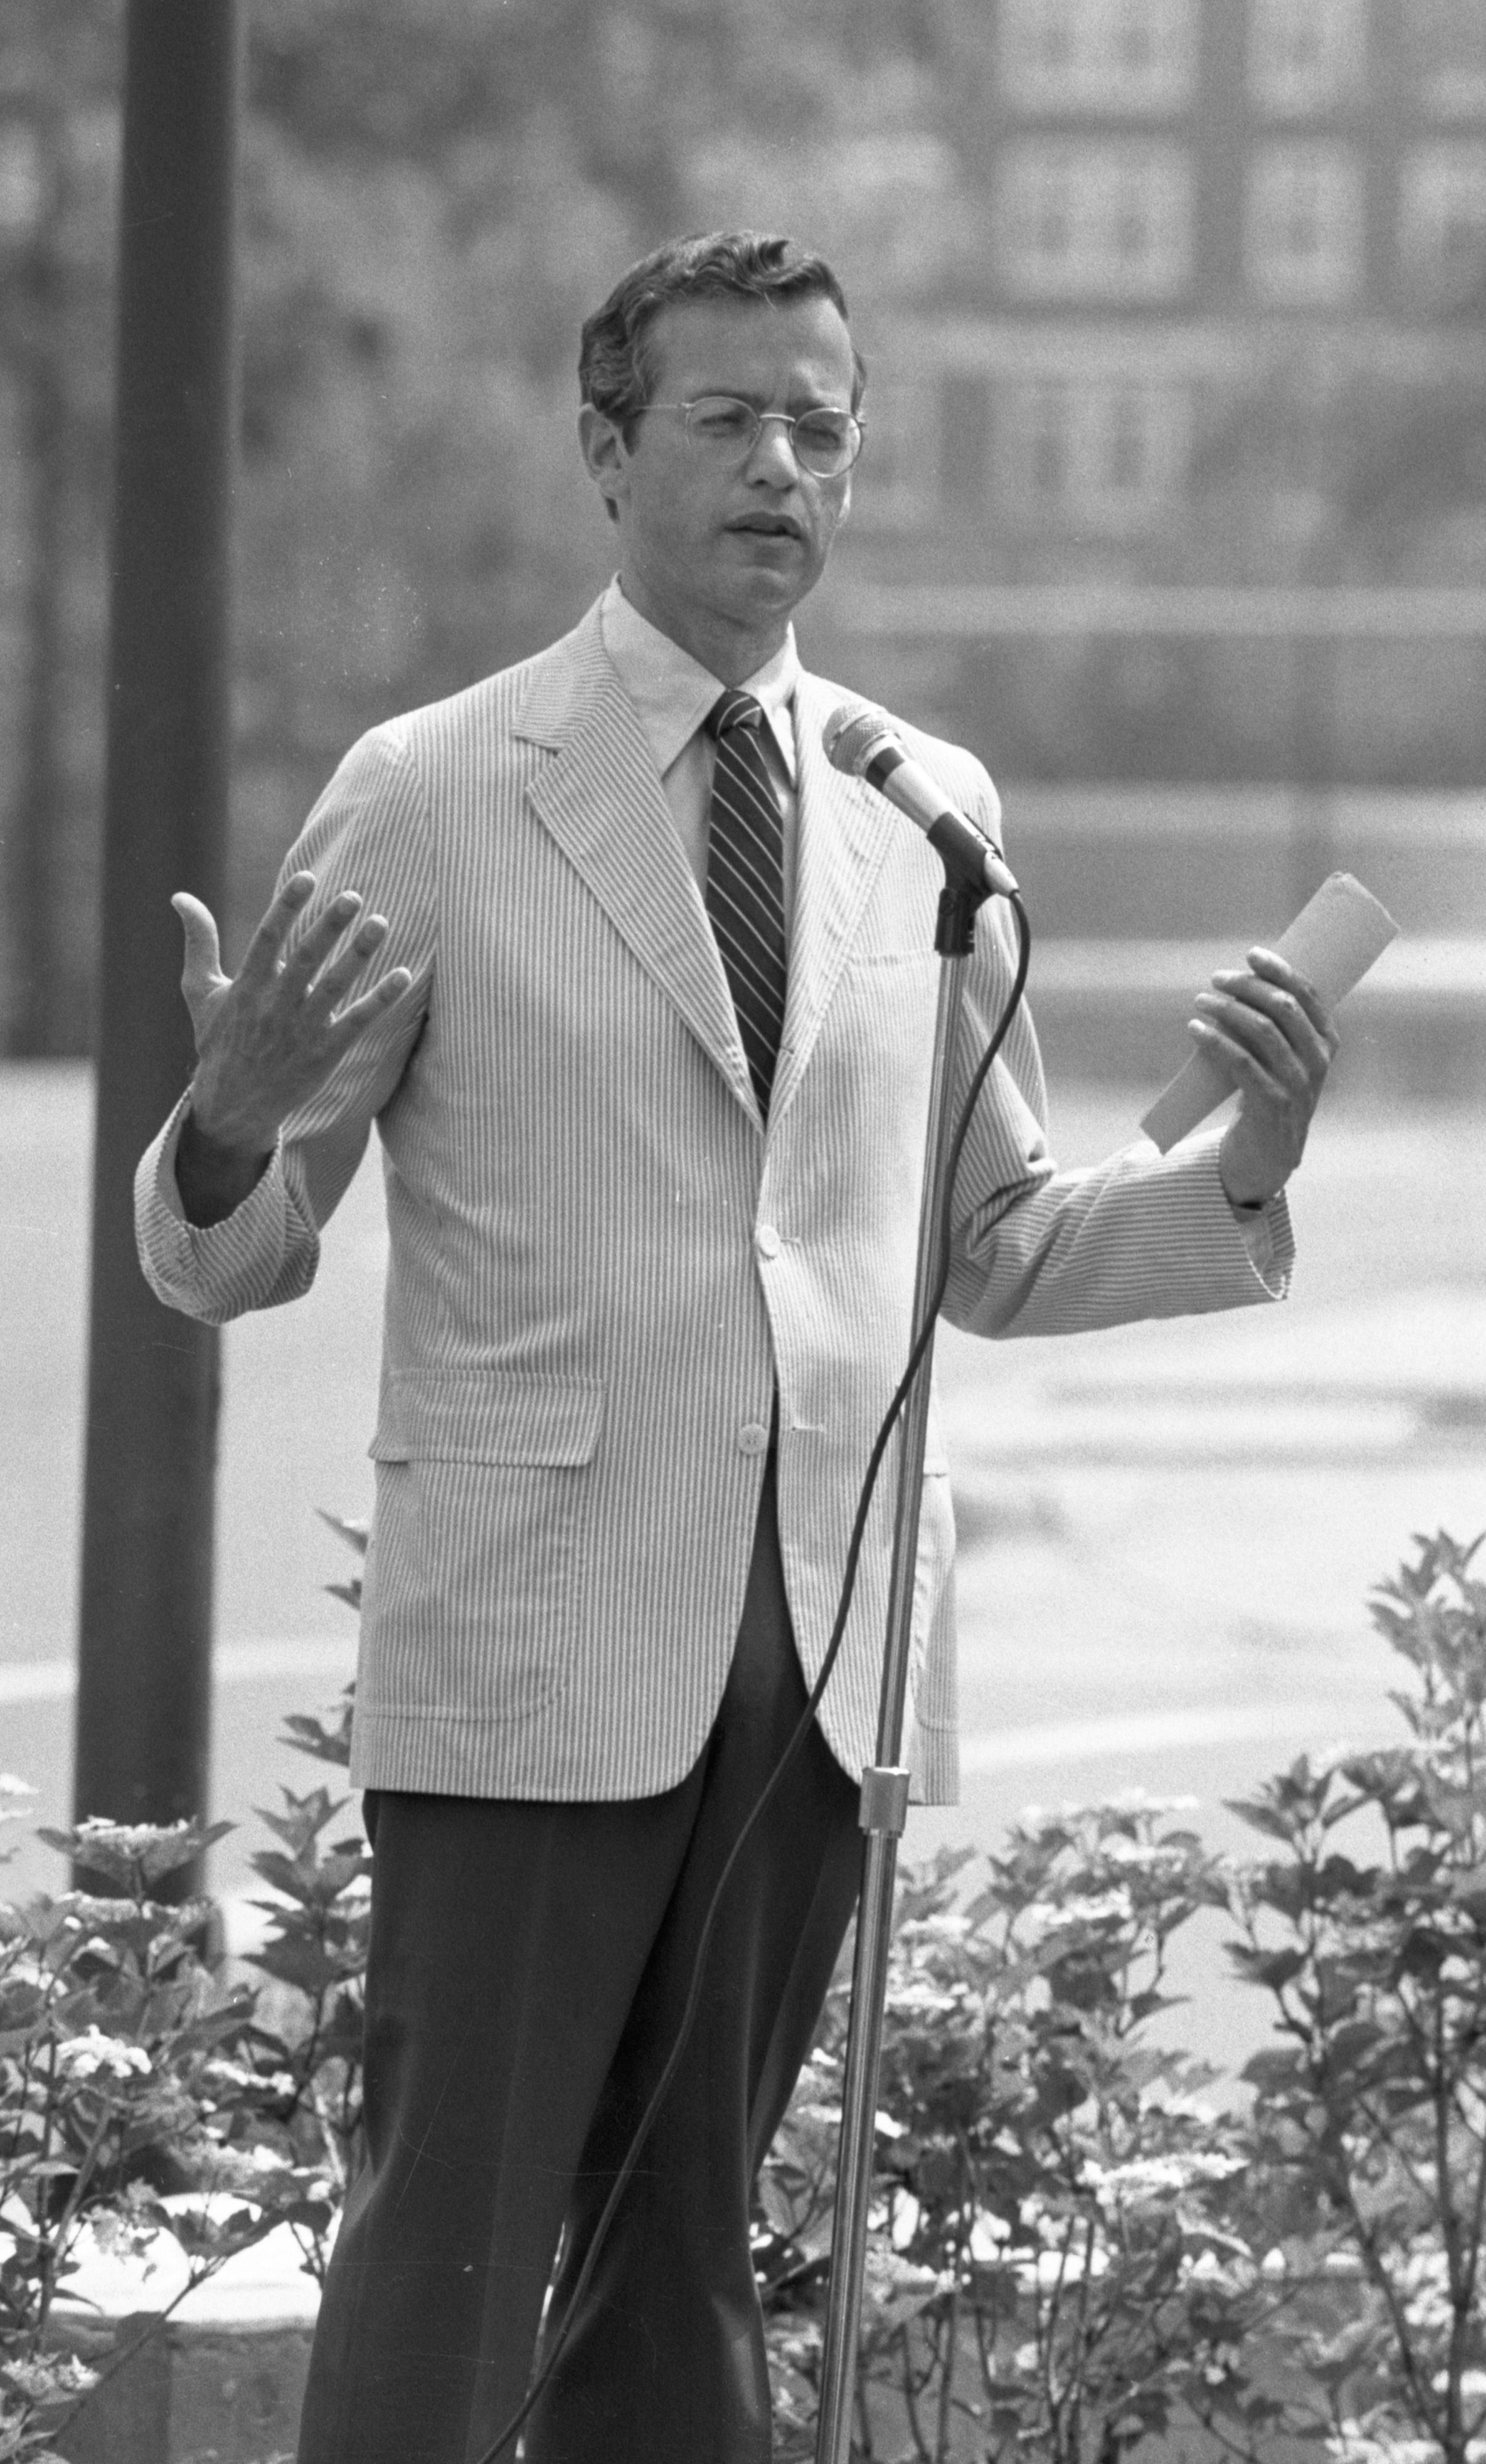 U Of M President Harold Shapiro Speaks At The Dedication Of Ann Arbor's Historical Jewish Cemetery, June 1983 image